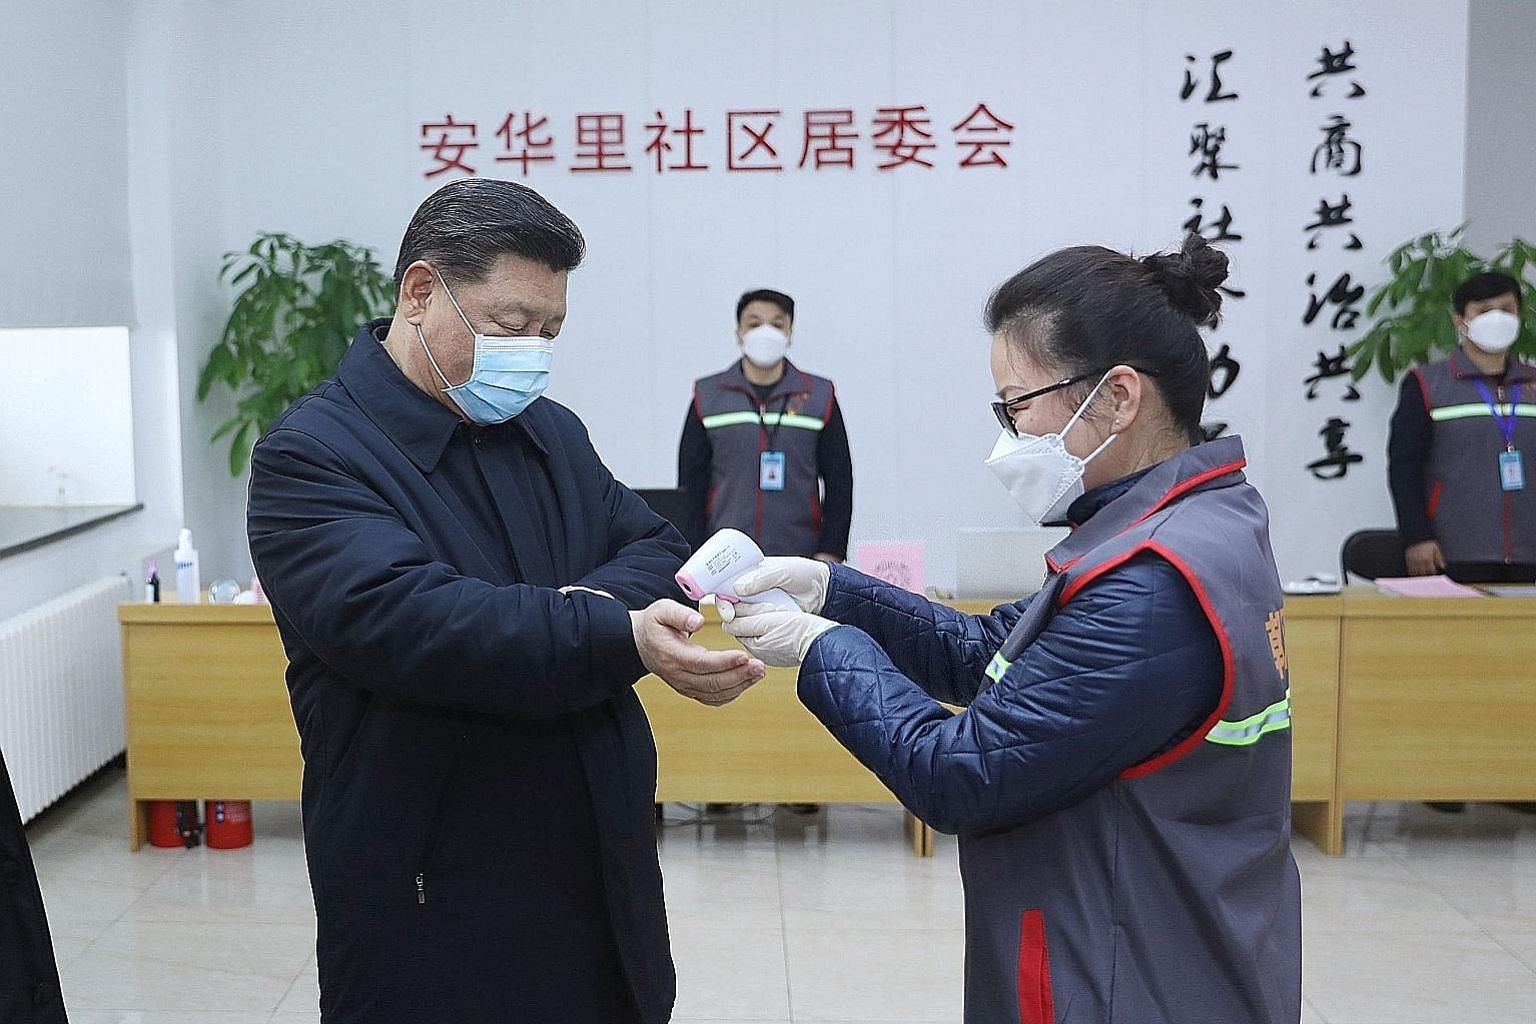 President Xi Jinping getting his temperature checked by a health official during an inspection of the coronavirus prevention and control work at the Anhuali community in Beijing, in a photo released on Monday.